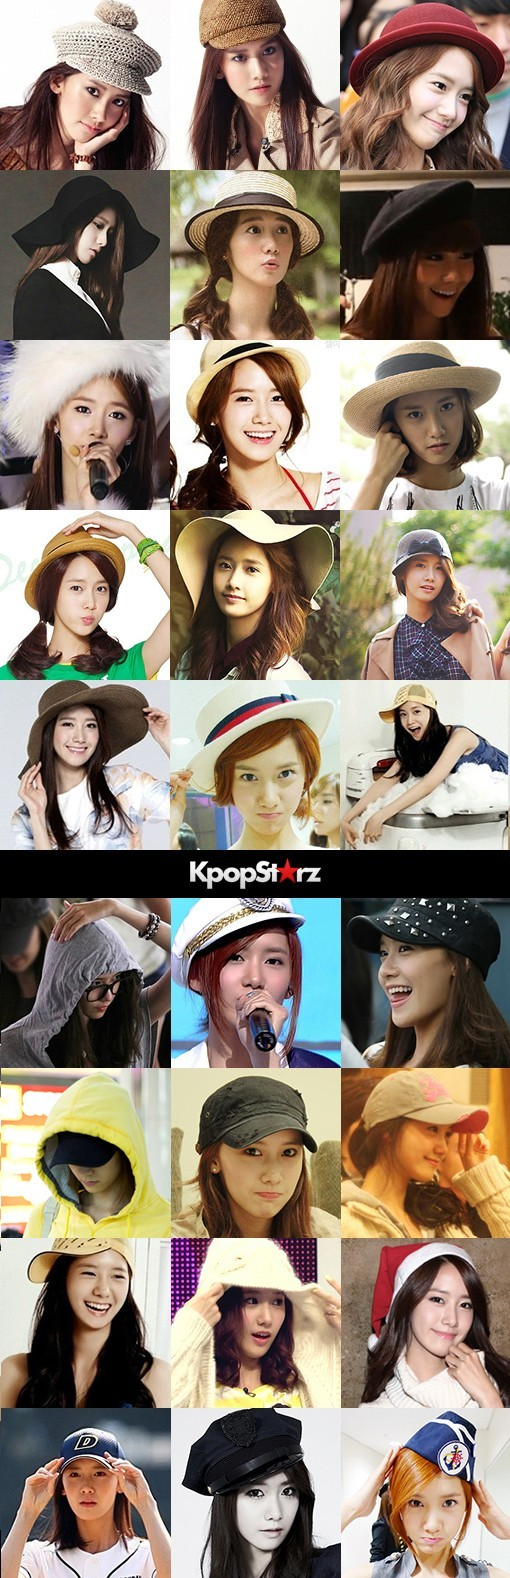 SNSD Yoona's Favorite Fashion Item: Explore Yoona's Collection of Hats and Caps